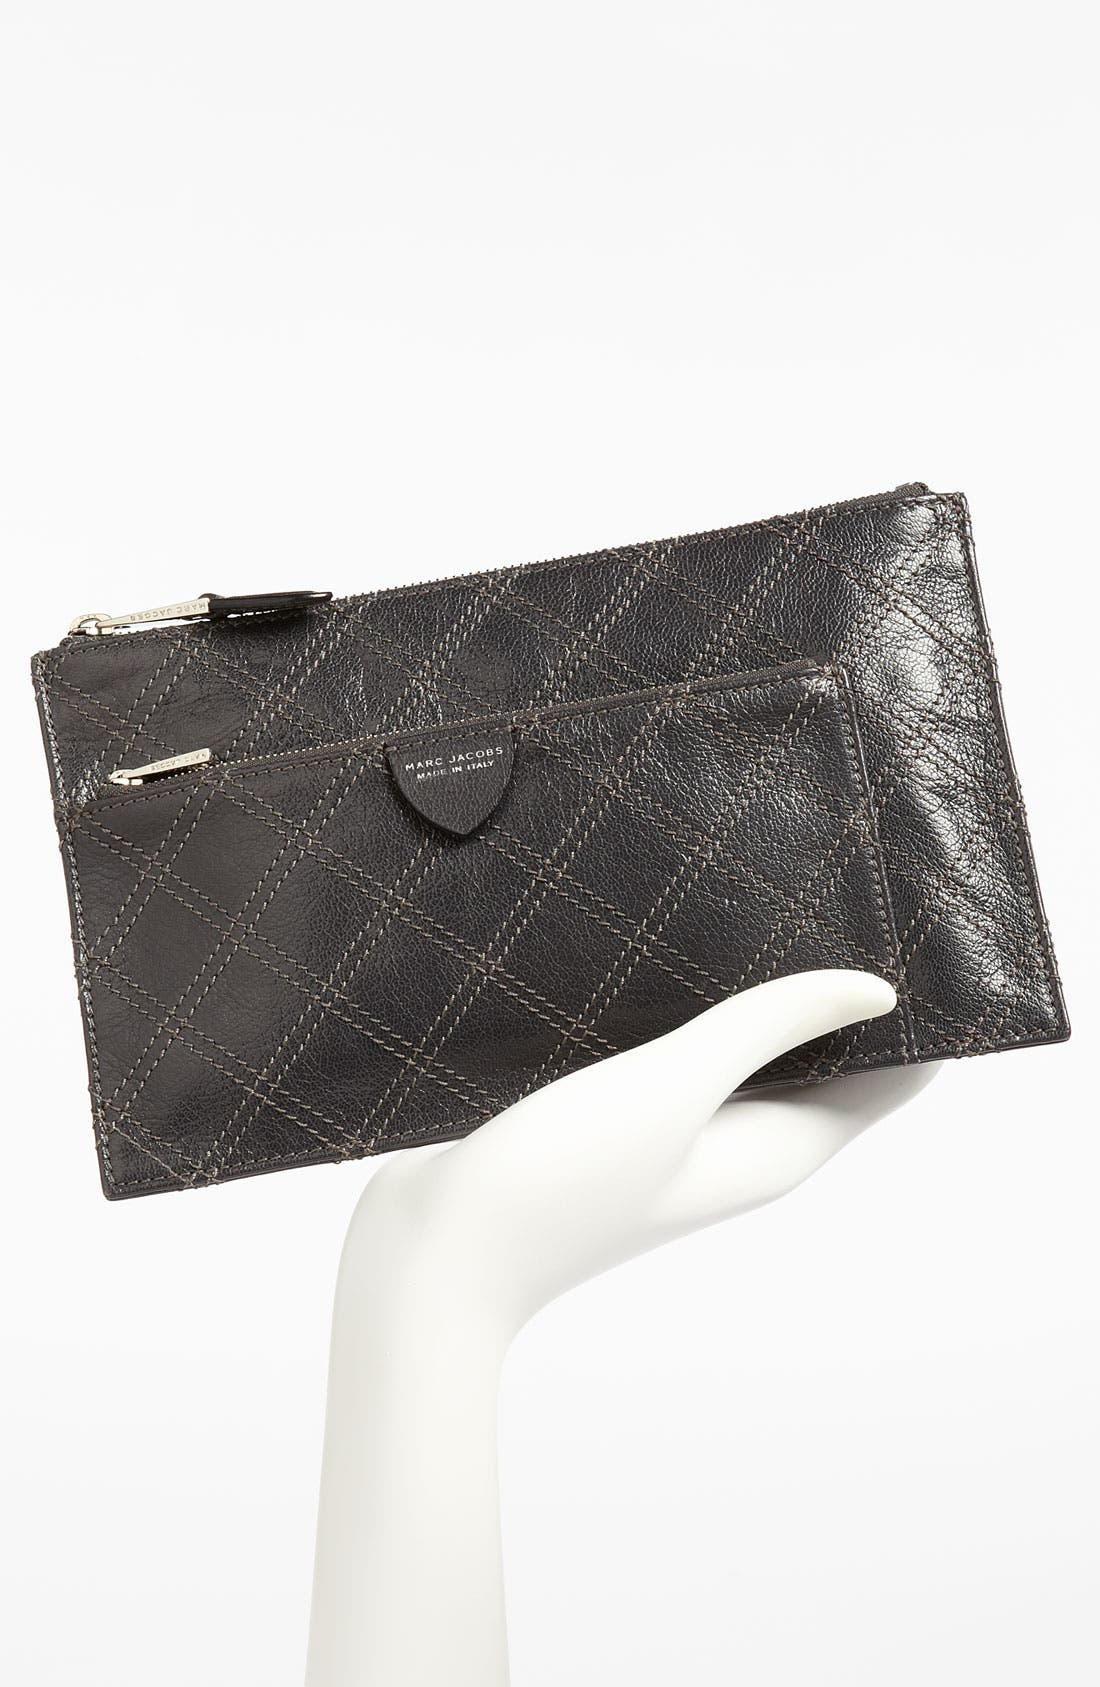 Alternate Image 2  - MARC JACOBS 'Small' Leather Pouch